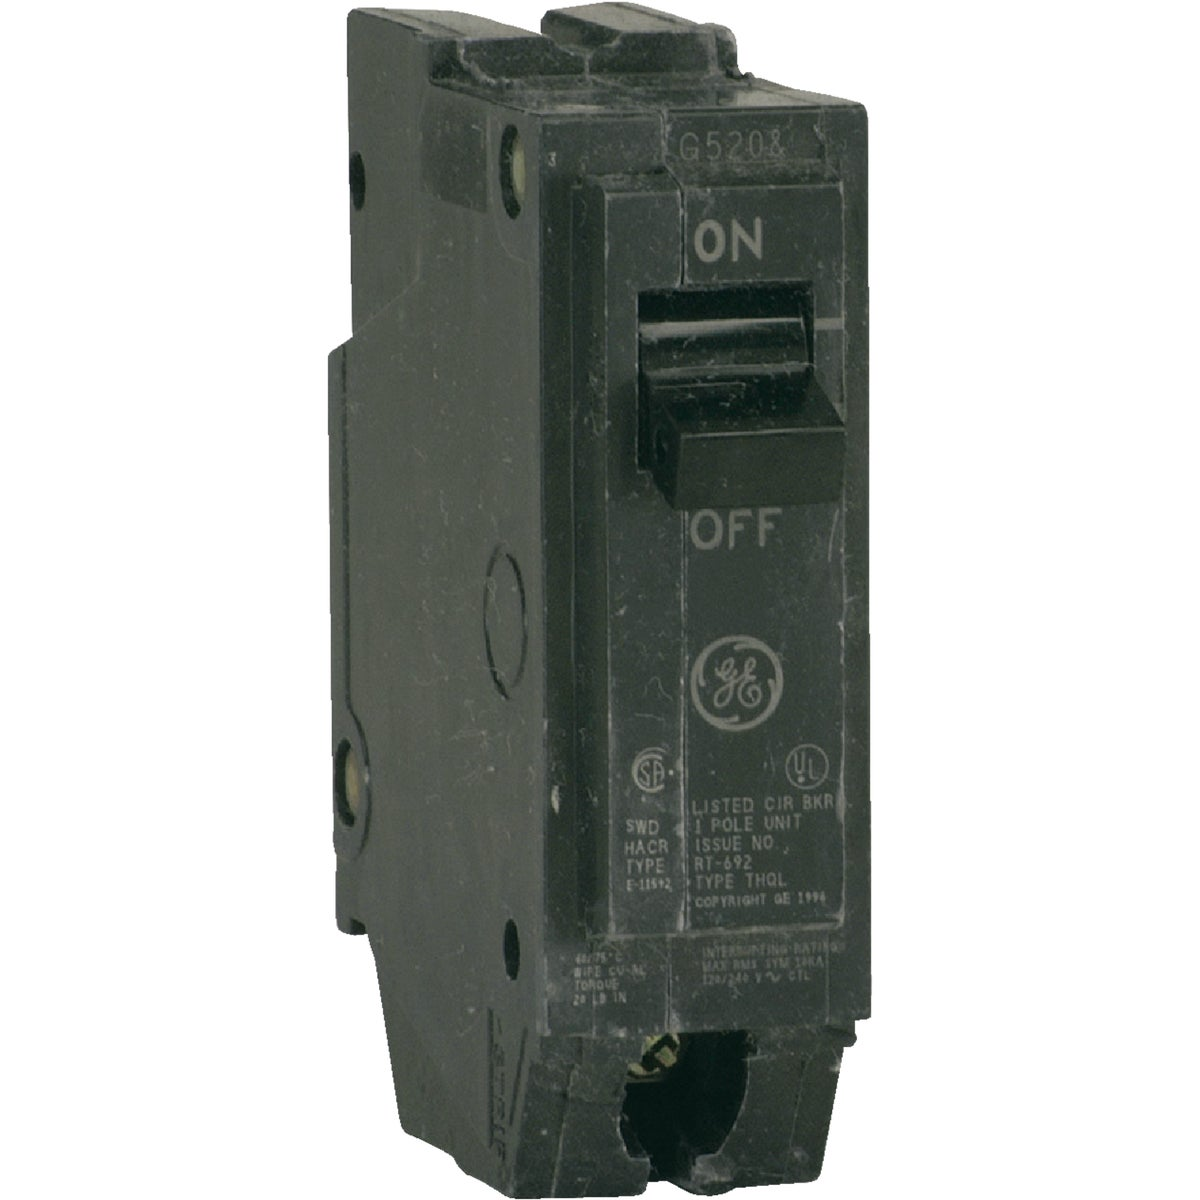 15A SP CIRCUIT BREAKER - THQL1115 by G E Industrial